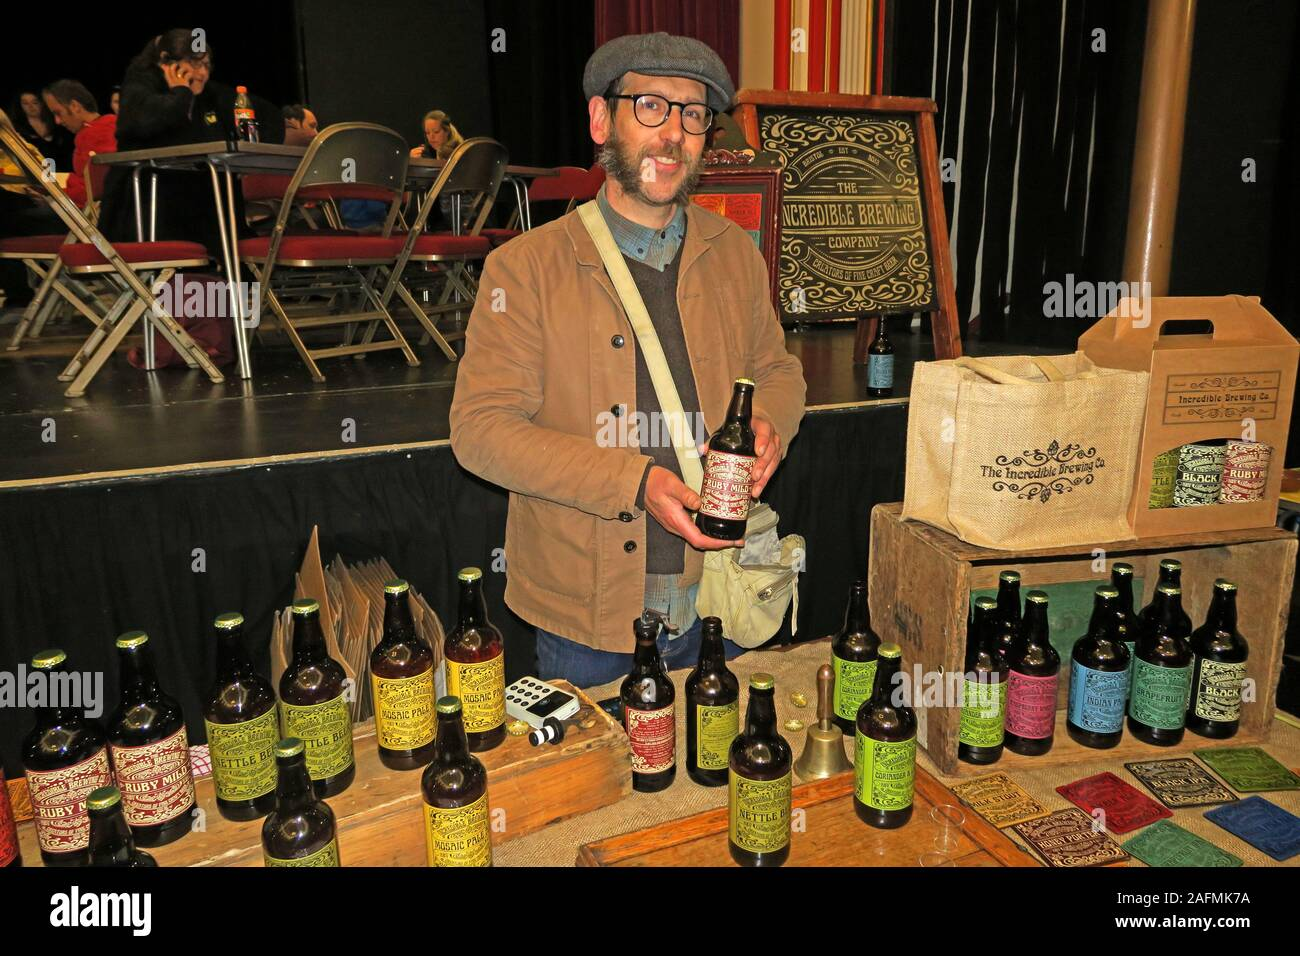 The Incredible Brewing Company,Bridgwater Food & Drink Festival 2019,taste of the west,foods,drink,Town hall Stock Photo